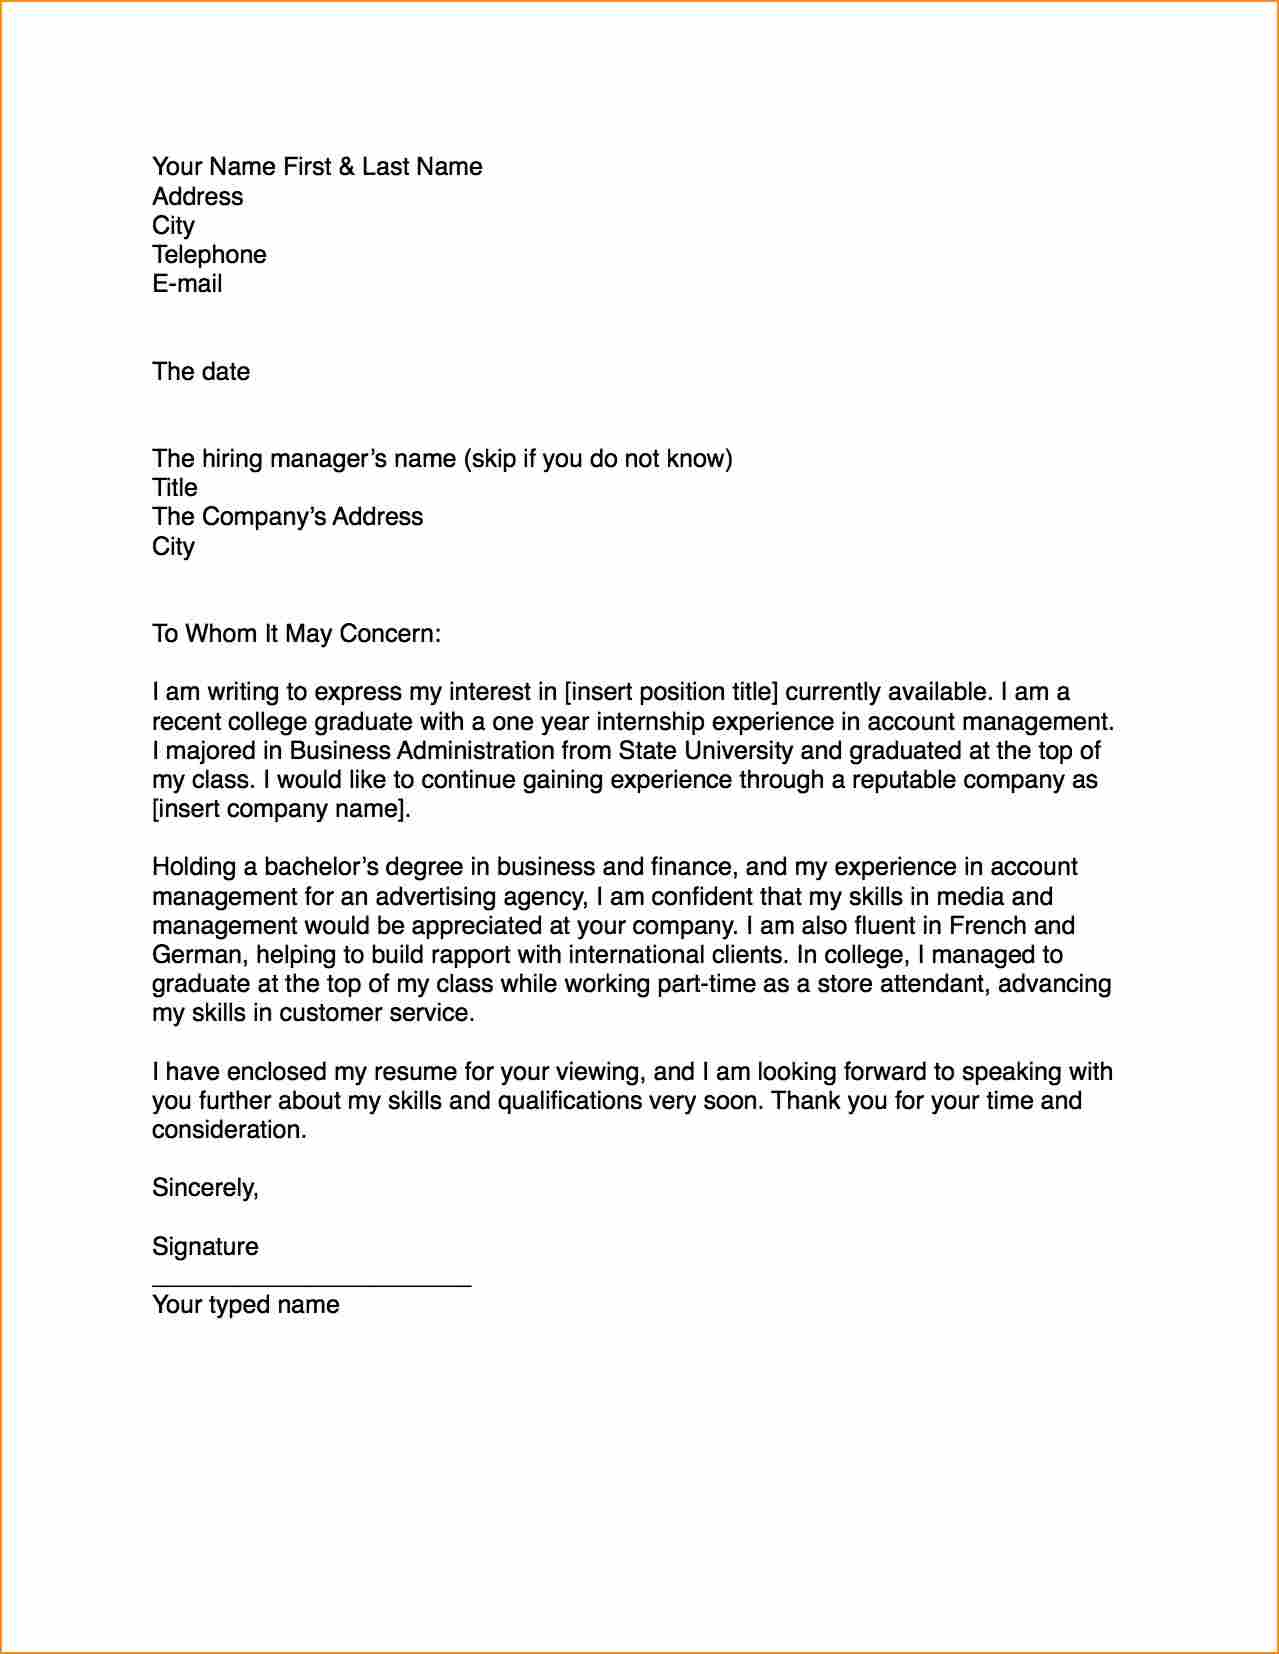 How To Write A Fax Letter | mobile discoveries